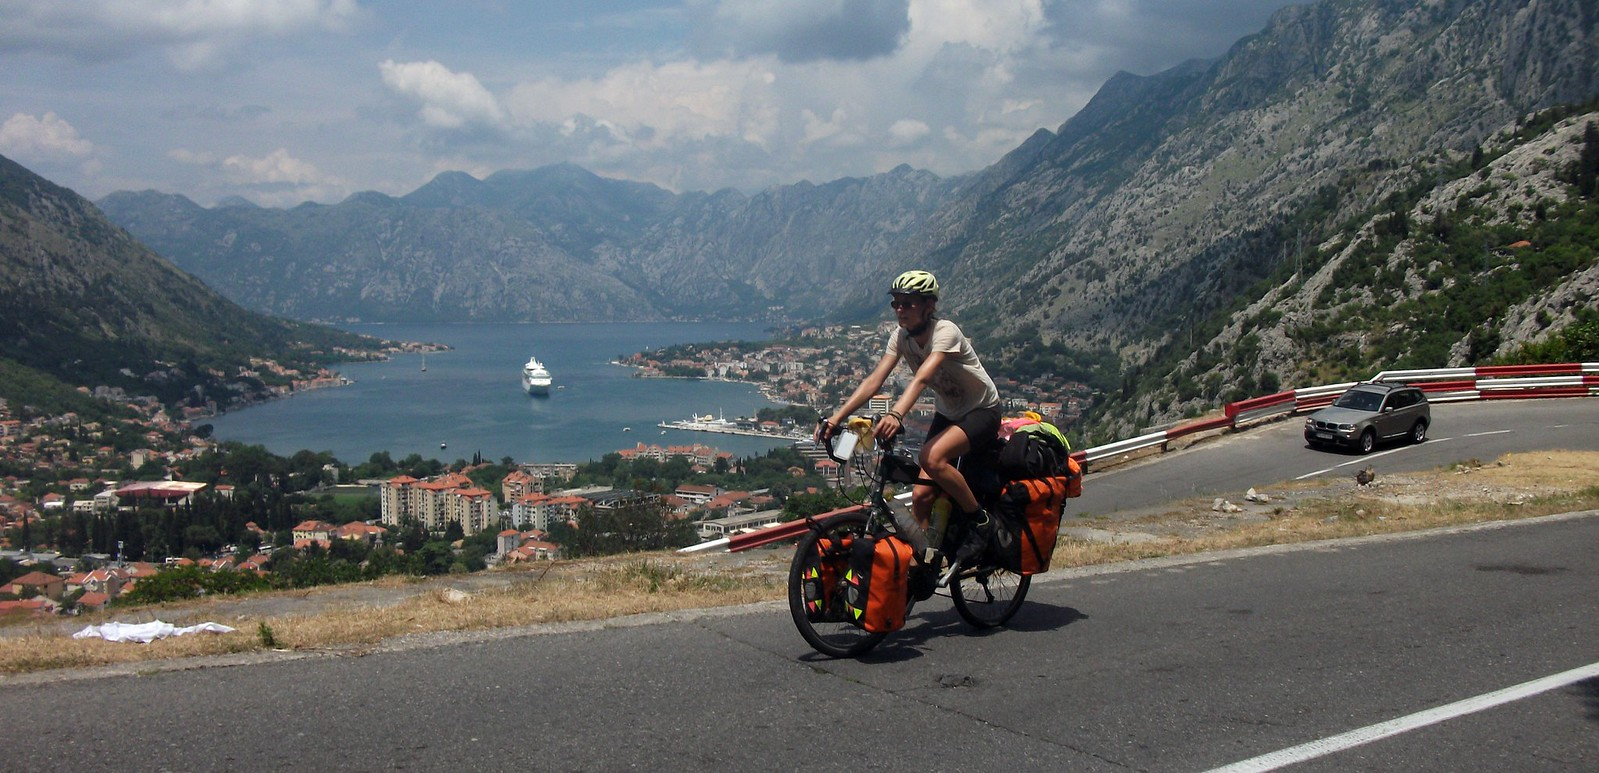 #21: Montenegro and its sweat-causing splendour